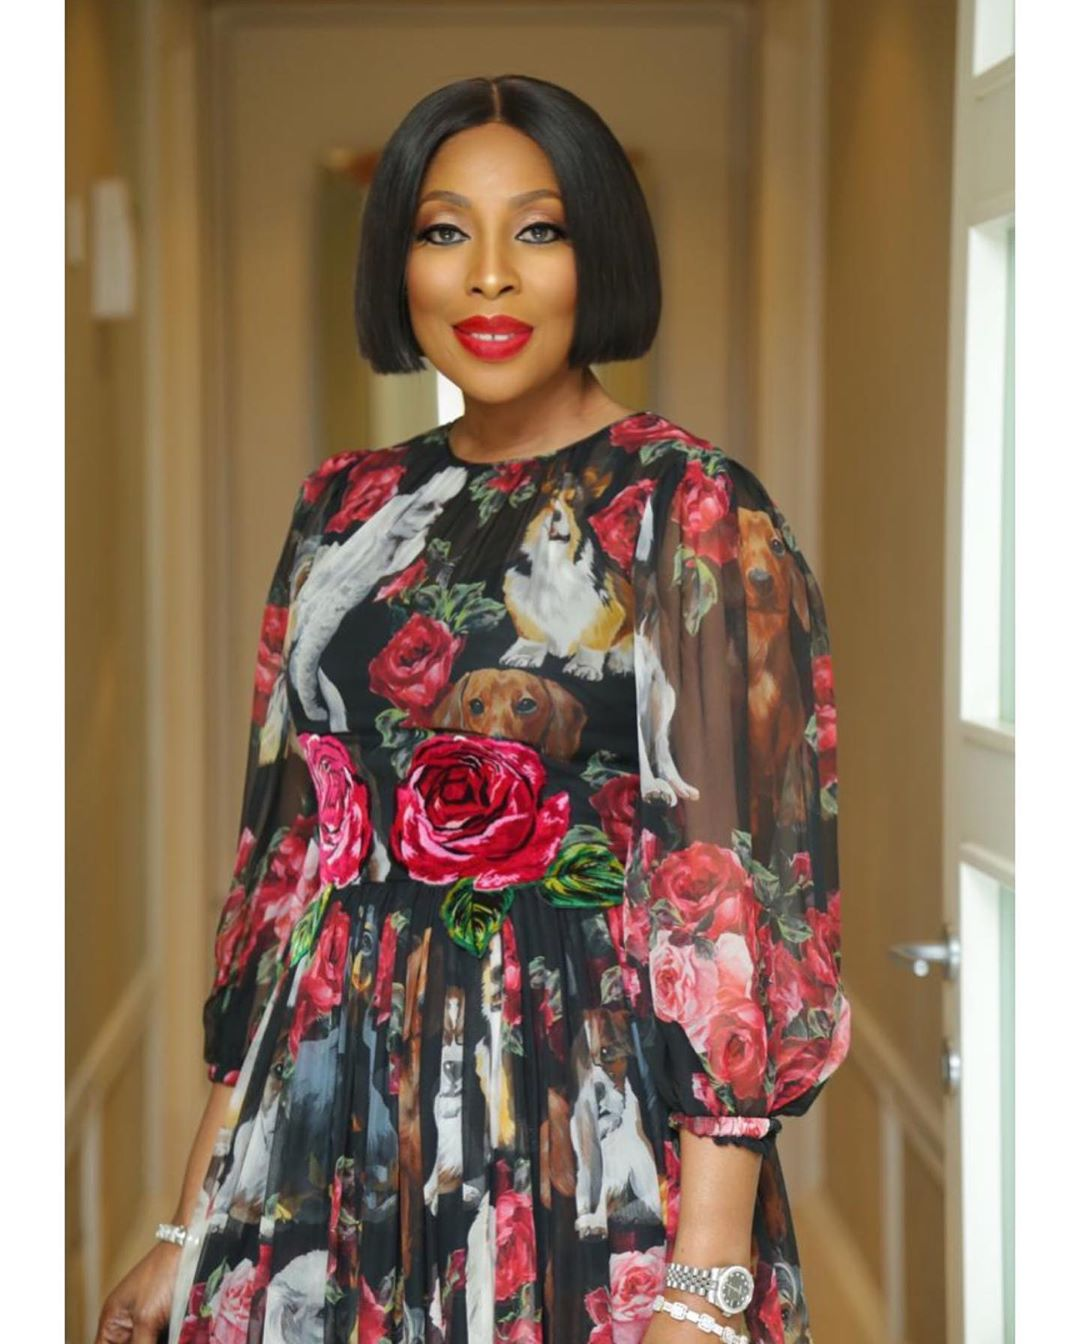 Mo Abudu Trends On The Internet After Gistlover Makes Immoral Allegations Against Her